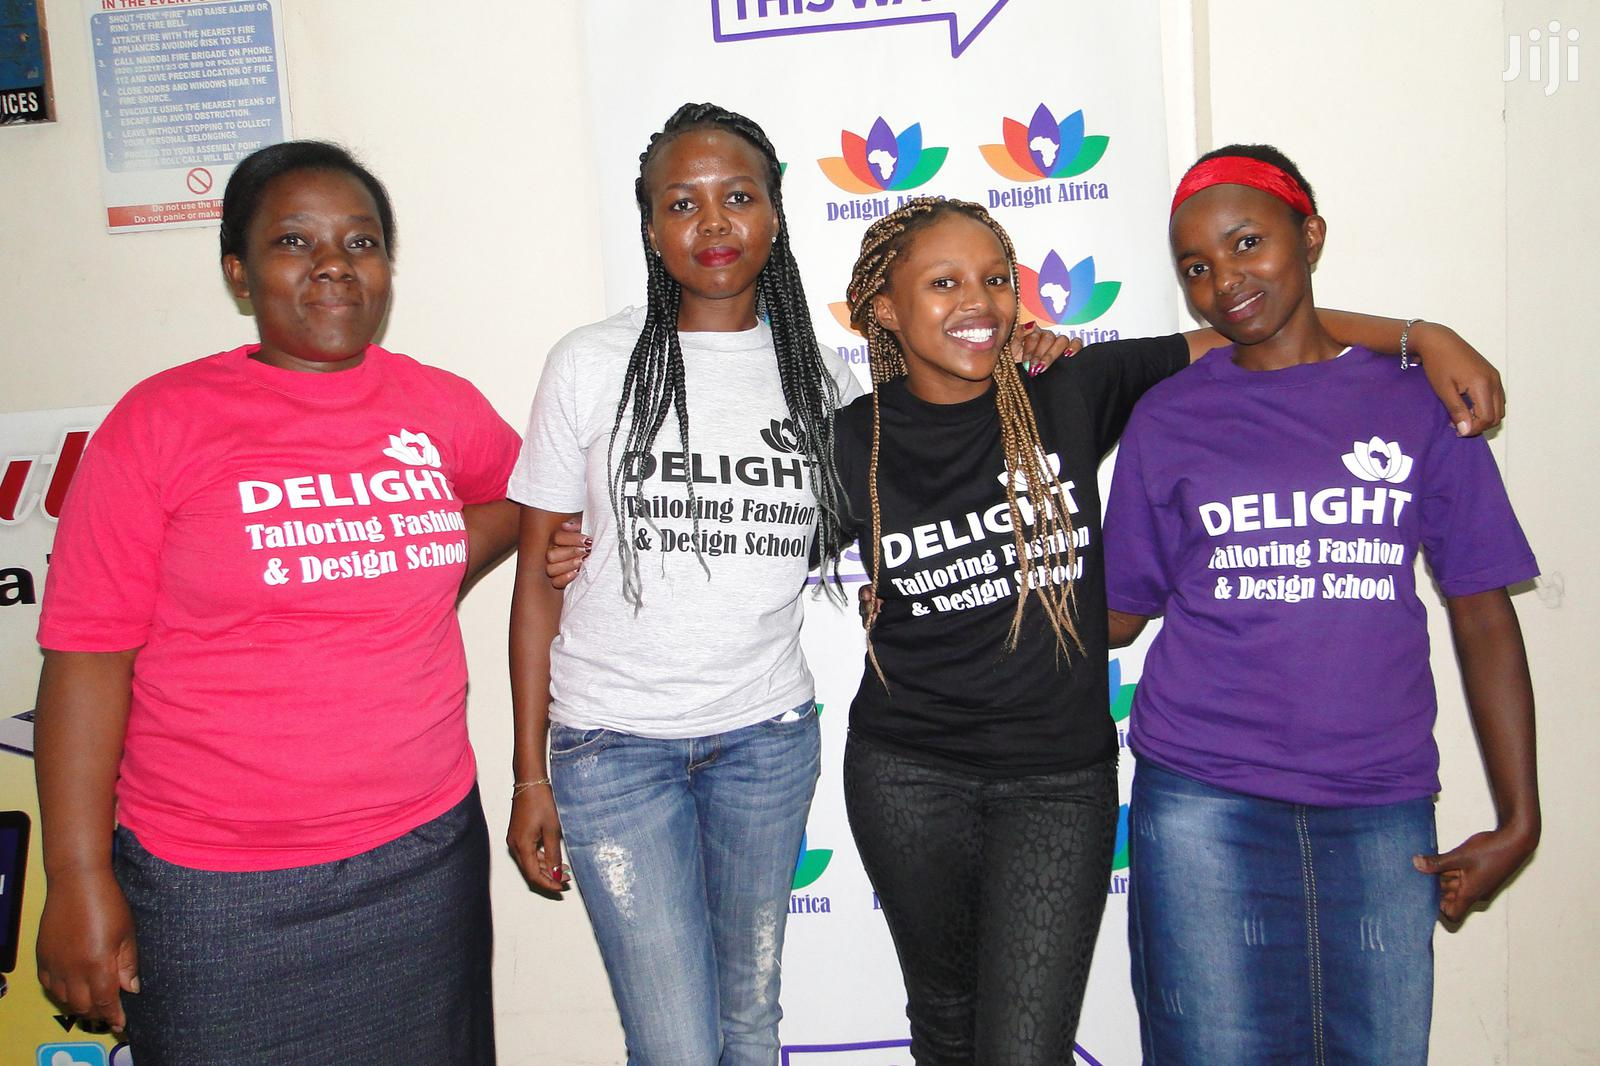 Delight Tailoring Fashion And Design School Dressmaking Classes In Nairobi Central Classes Courses Delight Africa Kate Jiji Co Ke In Nairobi Central Classes Courses Services From Delight Africa Kate